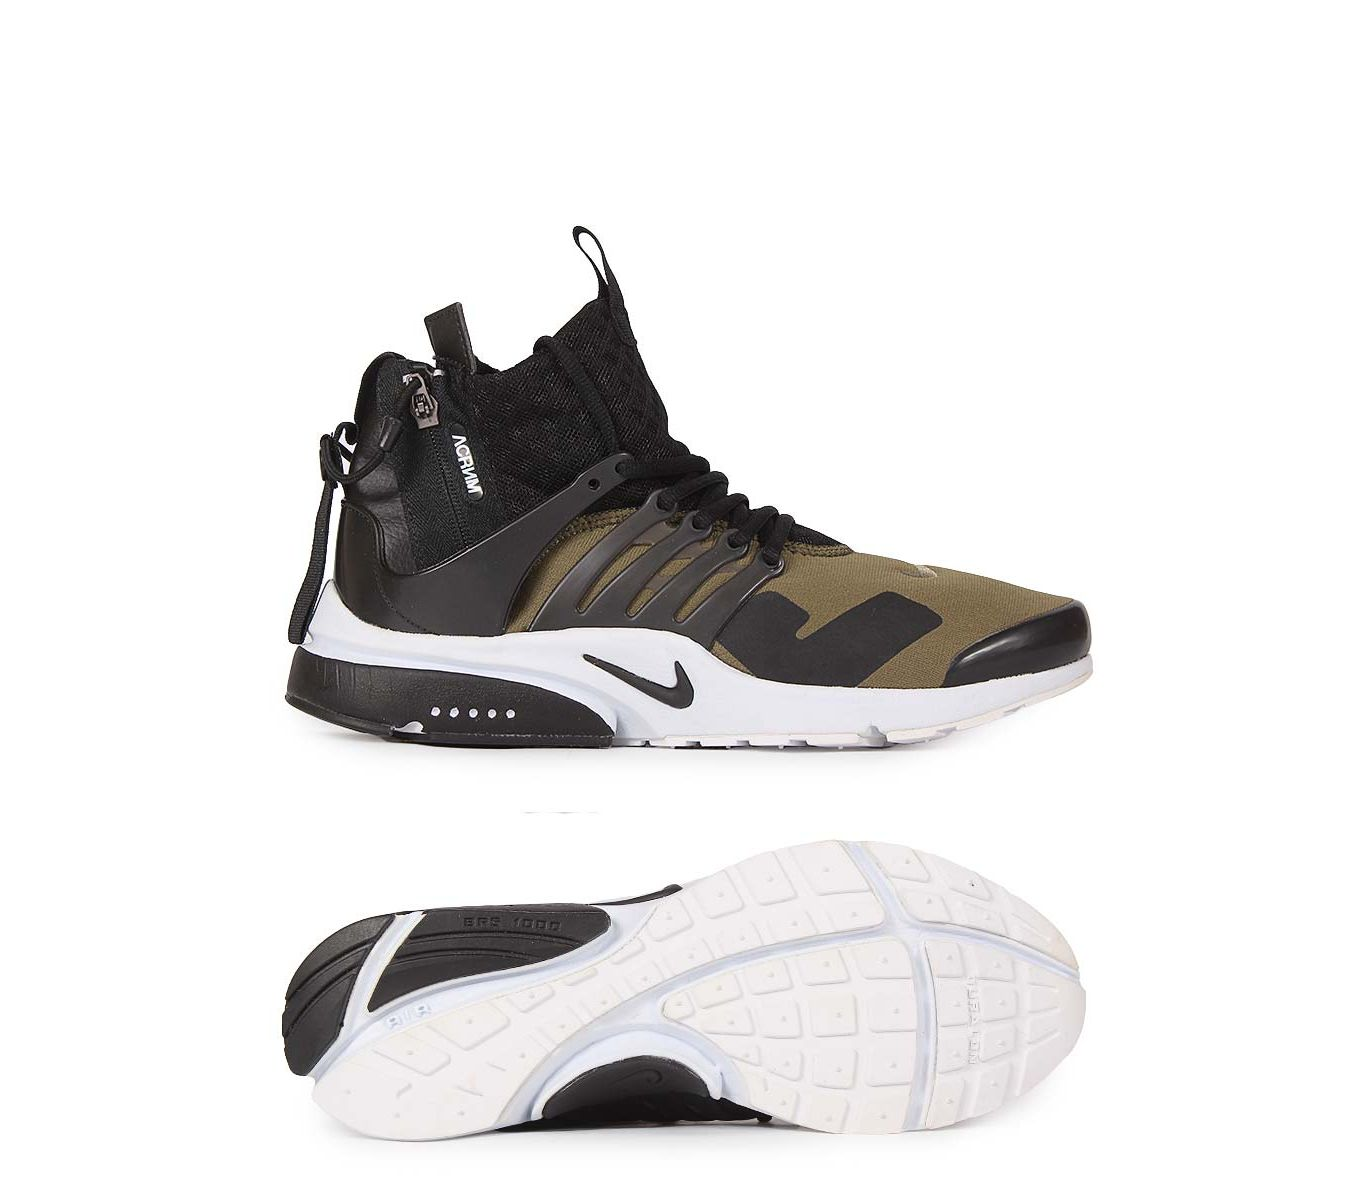 fa6f0c516208 Men s Fashion    Footwear    Lifestyle   Sports Shoes    Fasilite Air Presto  Mid - ACRONYM - Olive Green - Savers.pk - Everything you are looking for!